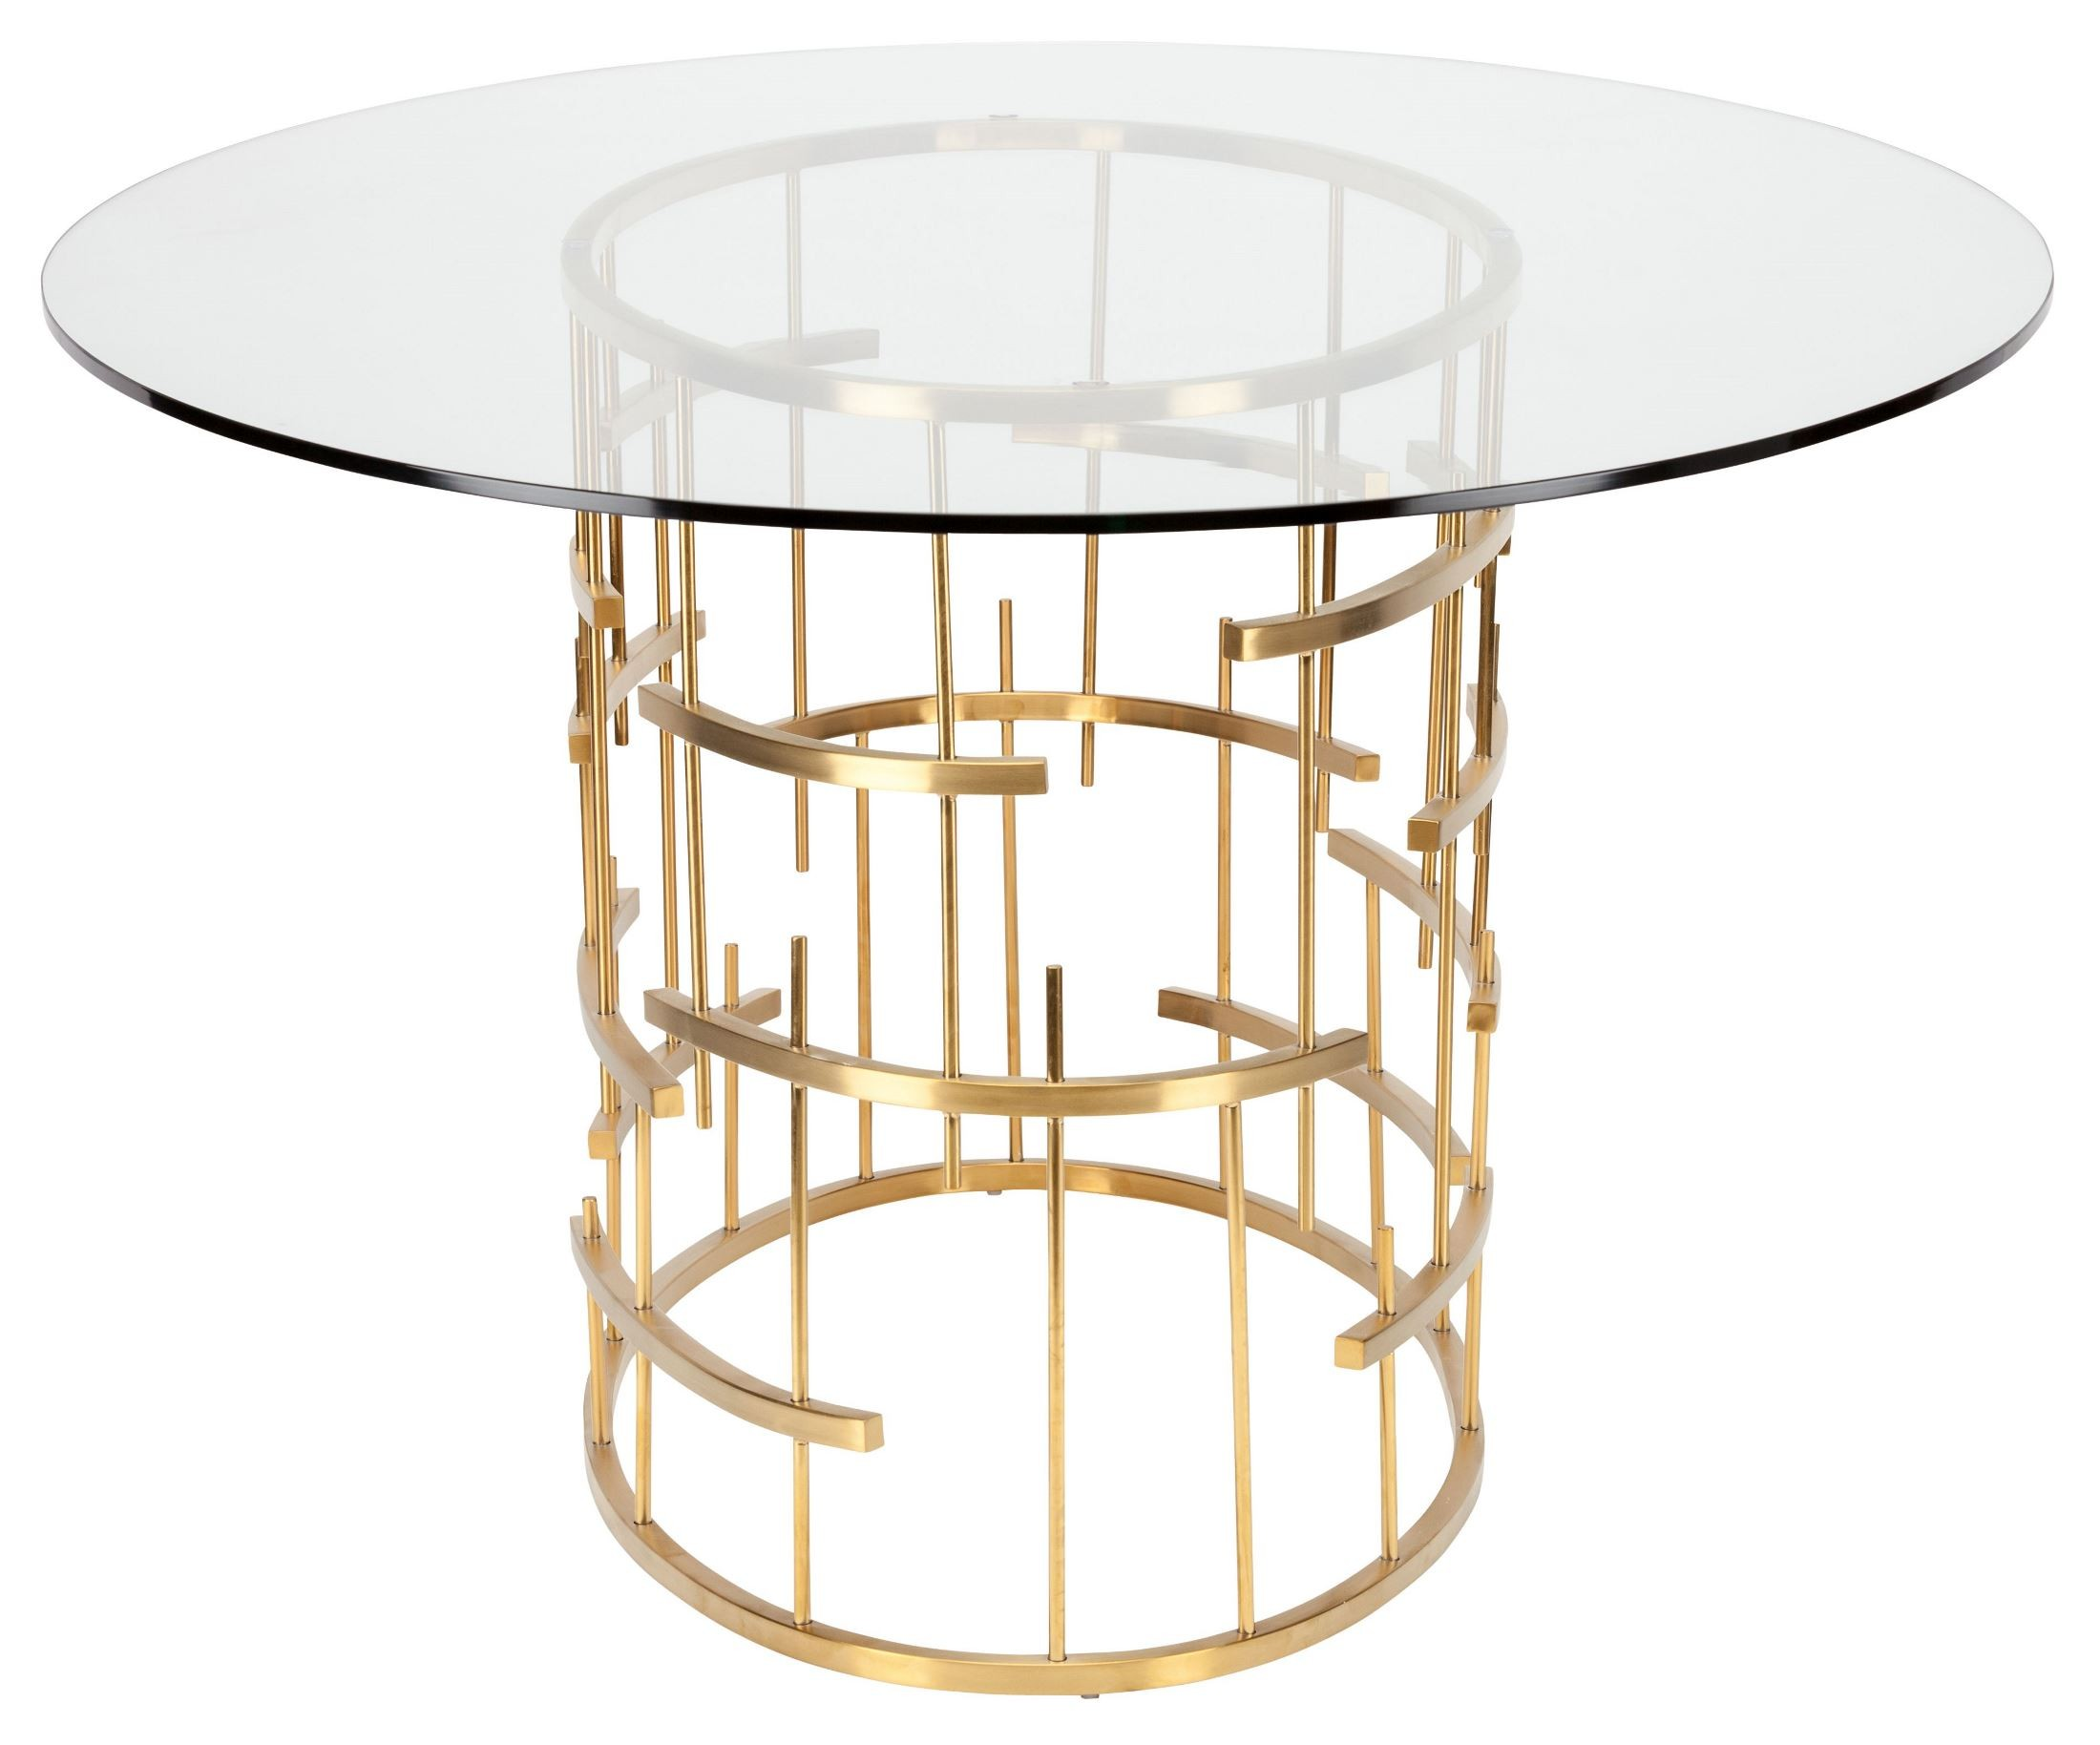 Oval tiffany clear glass and gold metal dining table from for Oval glass dining table